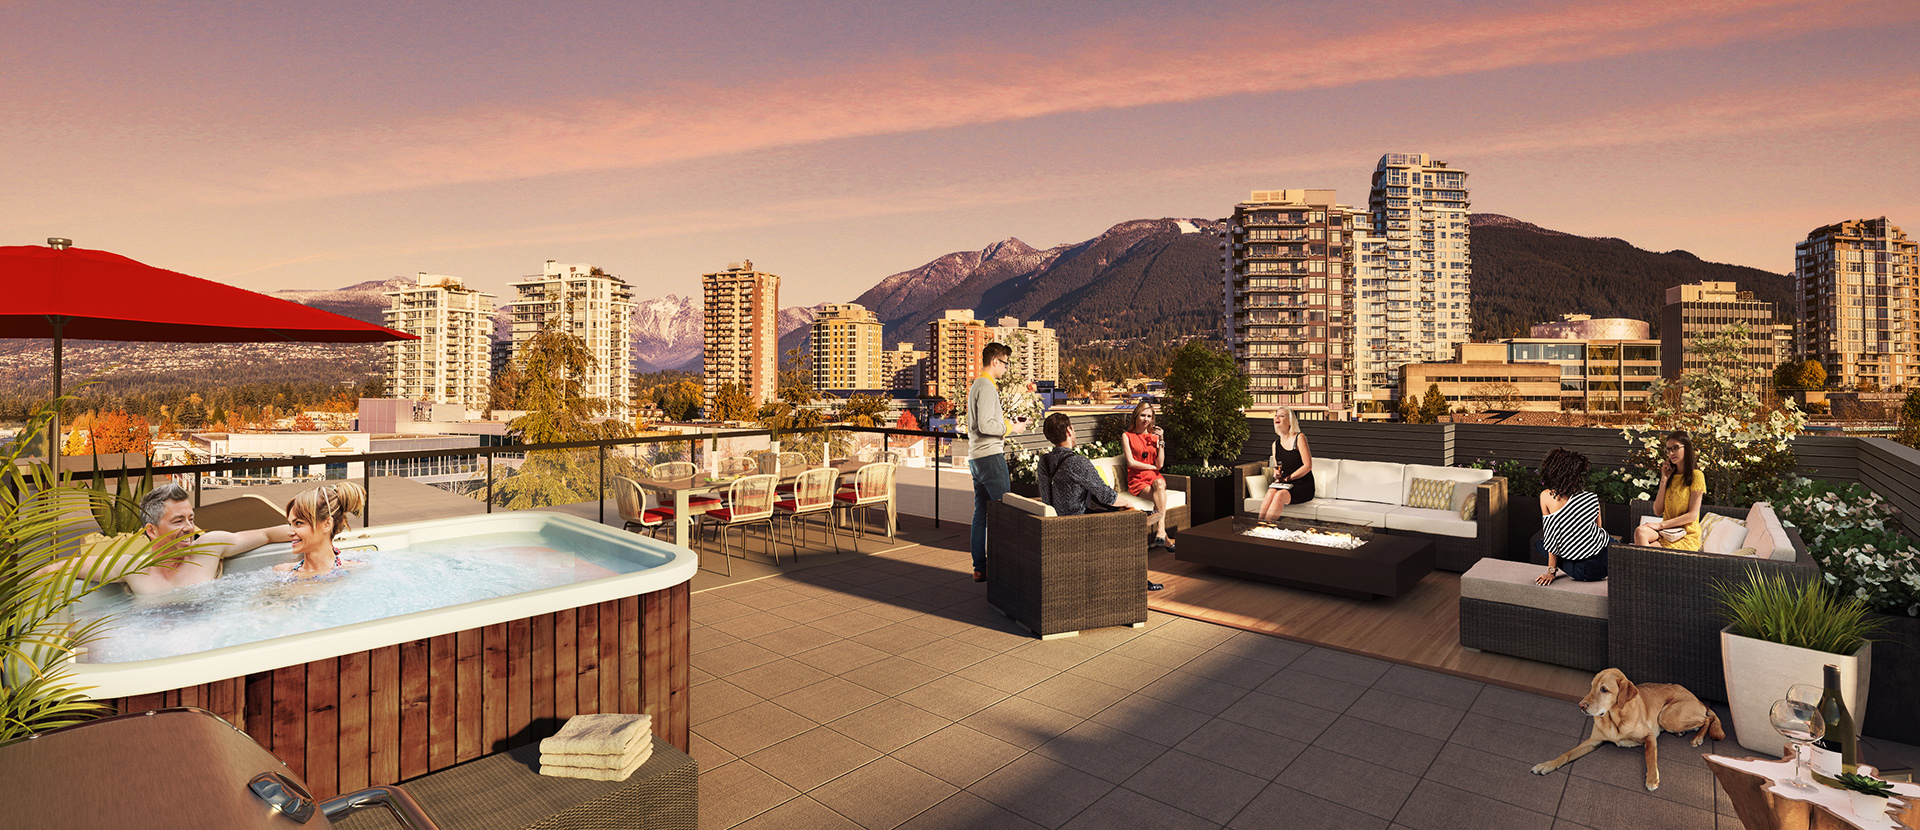 gallery-renderings-roofdeck at 302 - 150 E 8th Ave, Vancouver, Bc V5t 1r7, Central Lonsdale, North Vancouver